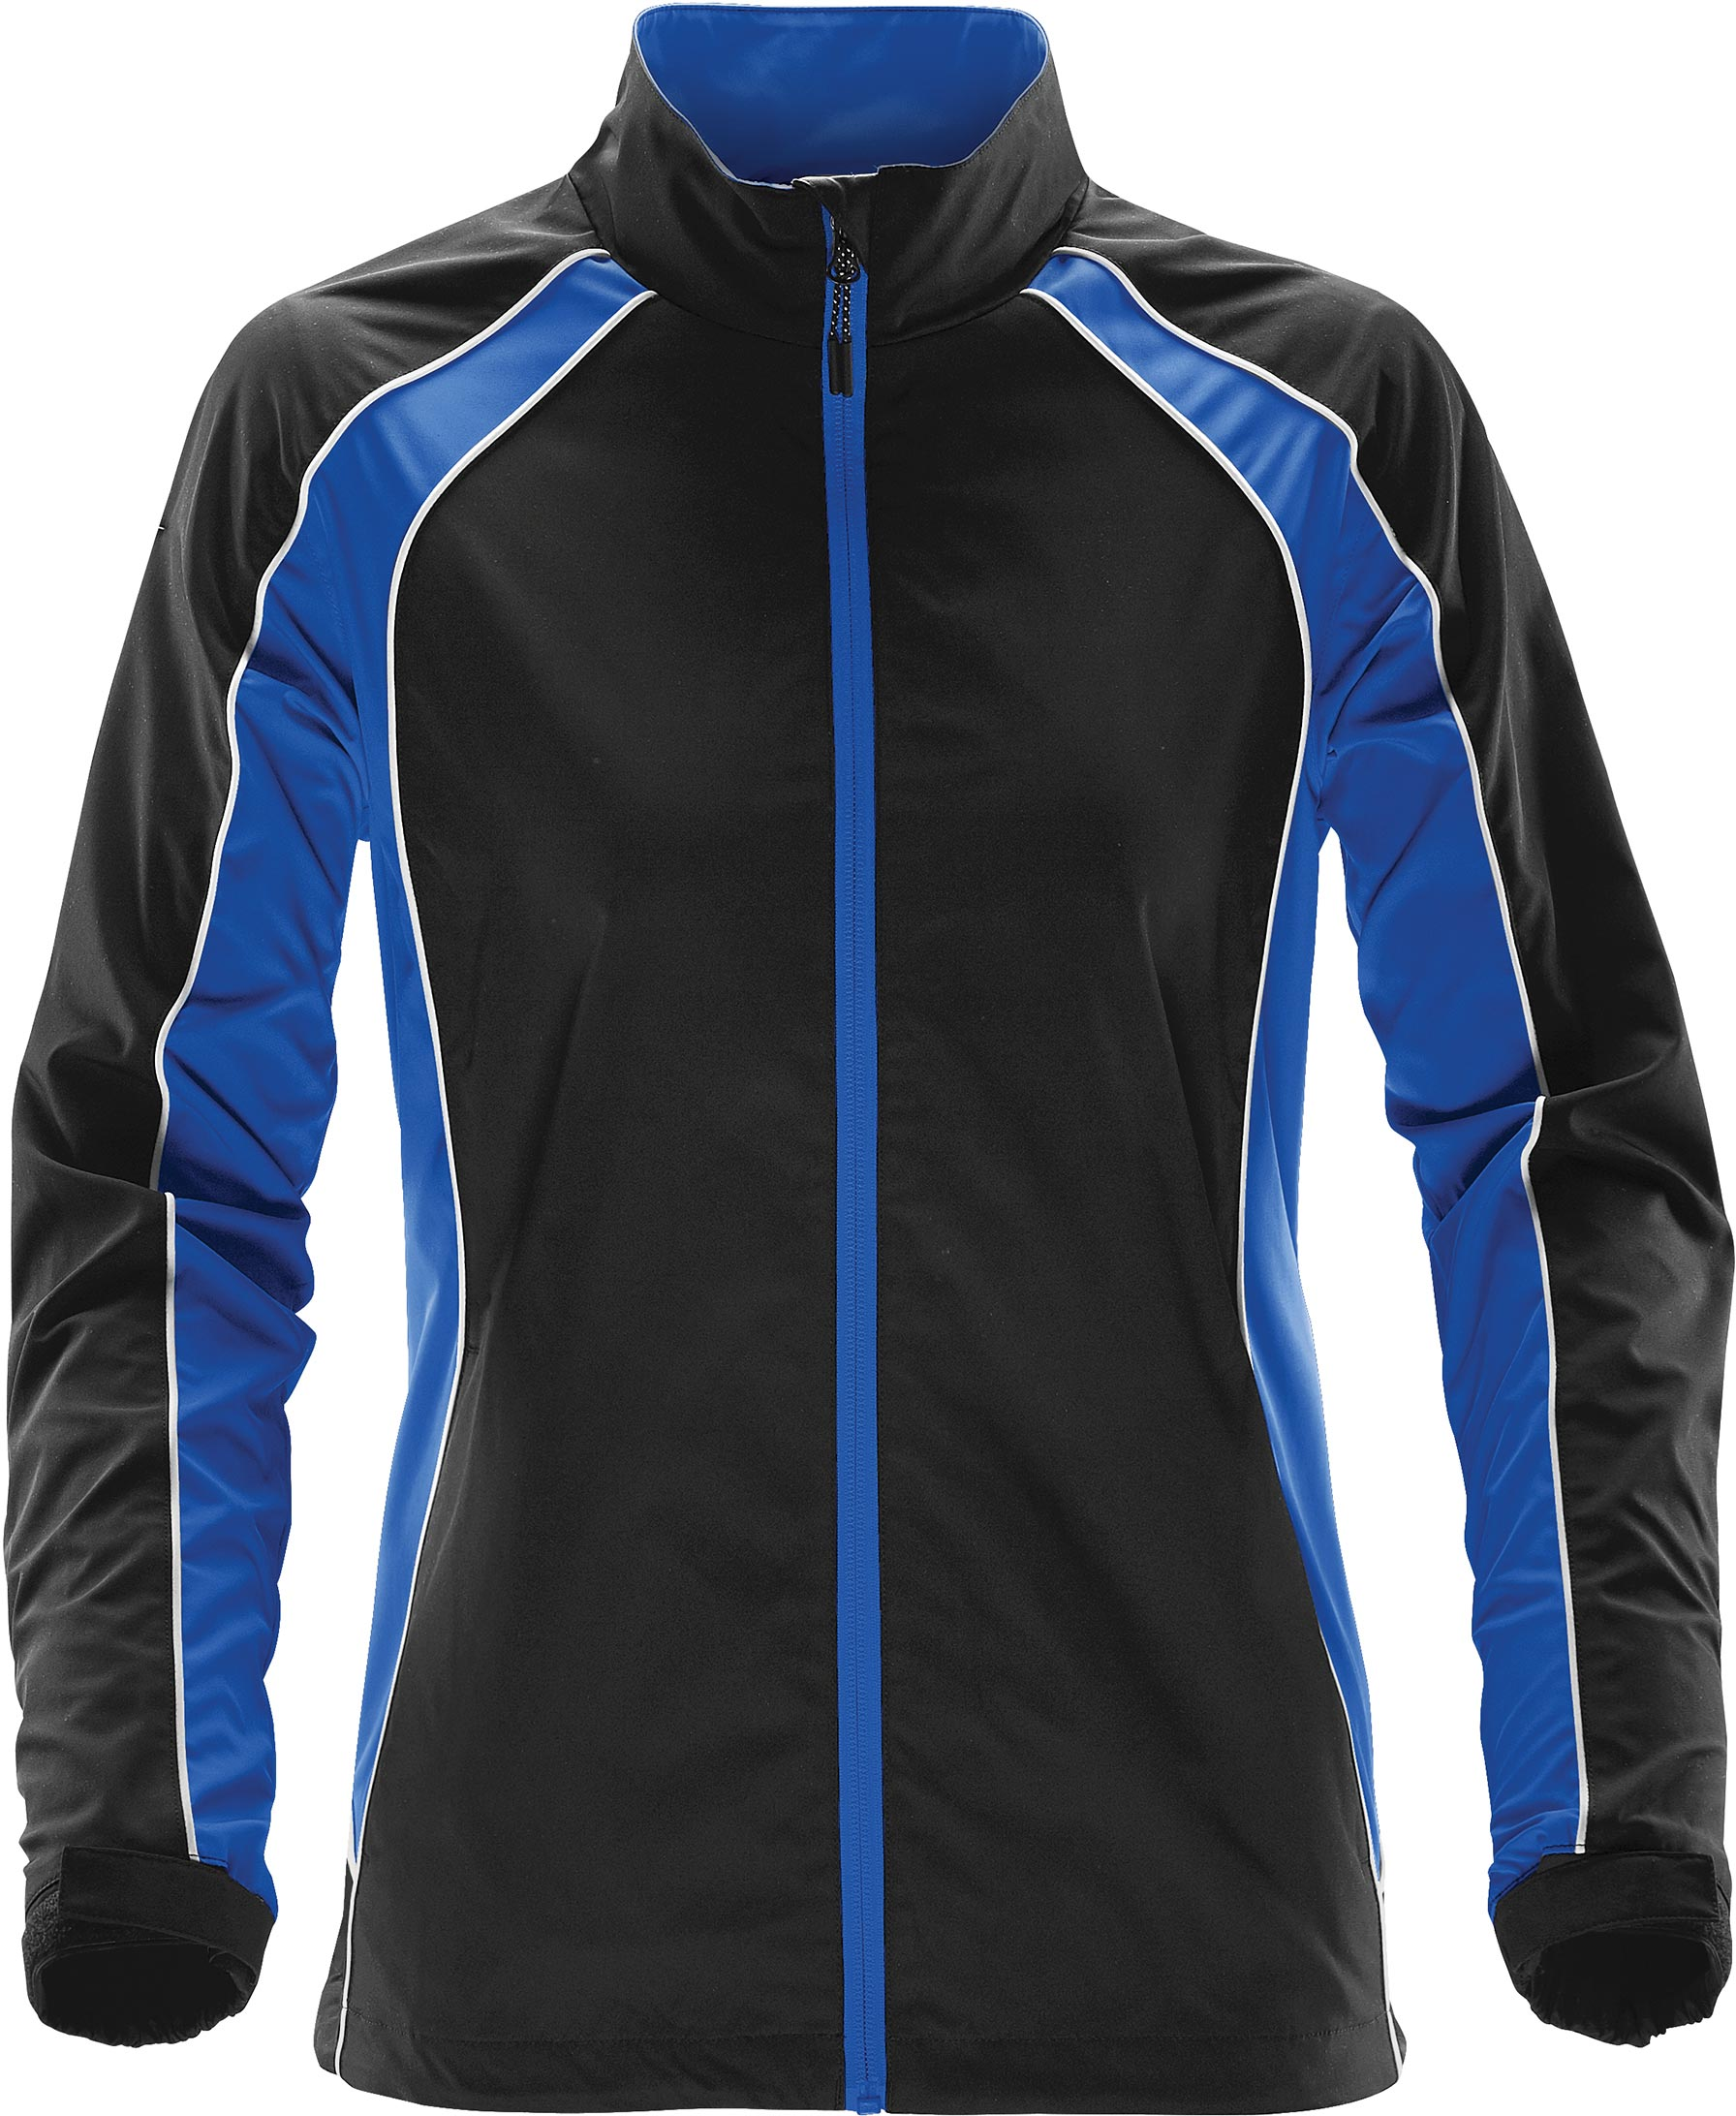 STORMTECH LADIES WARRIOR TRAINING JACKET